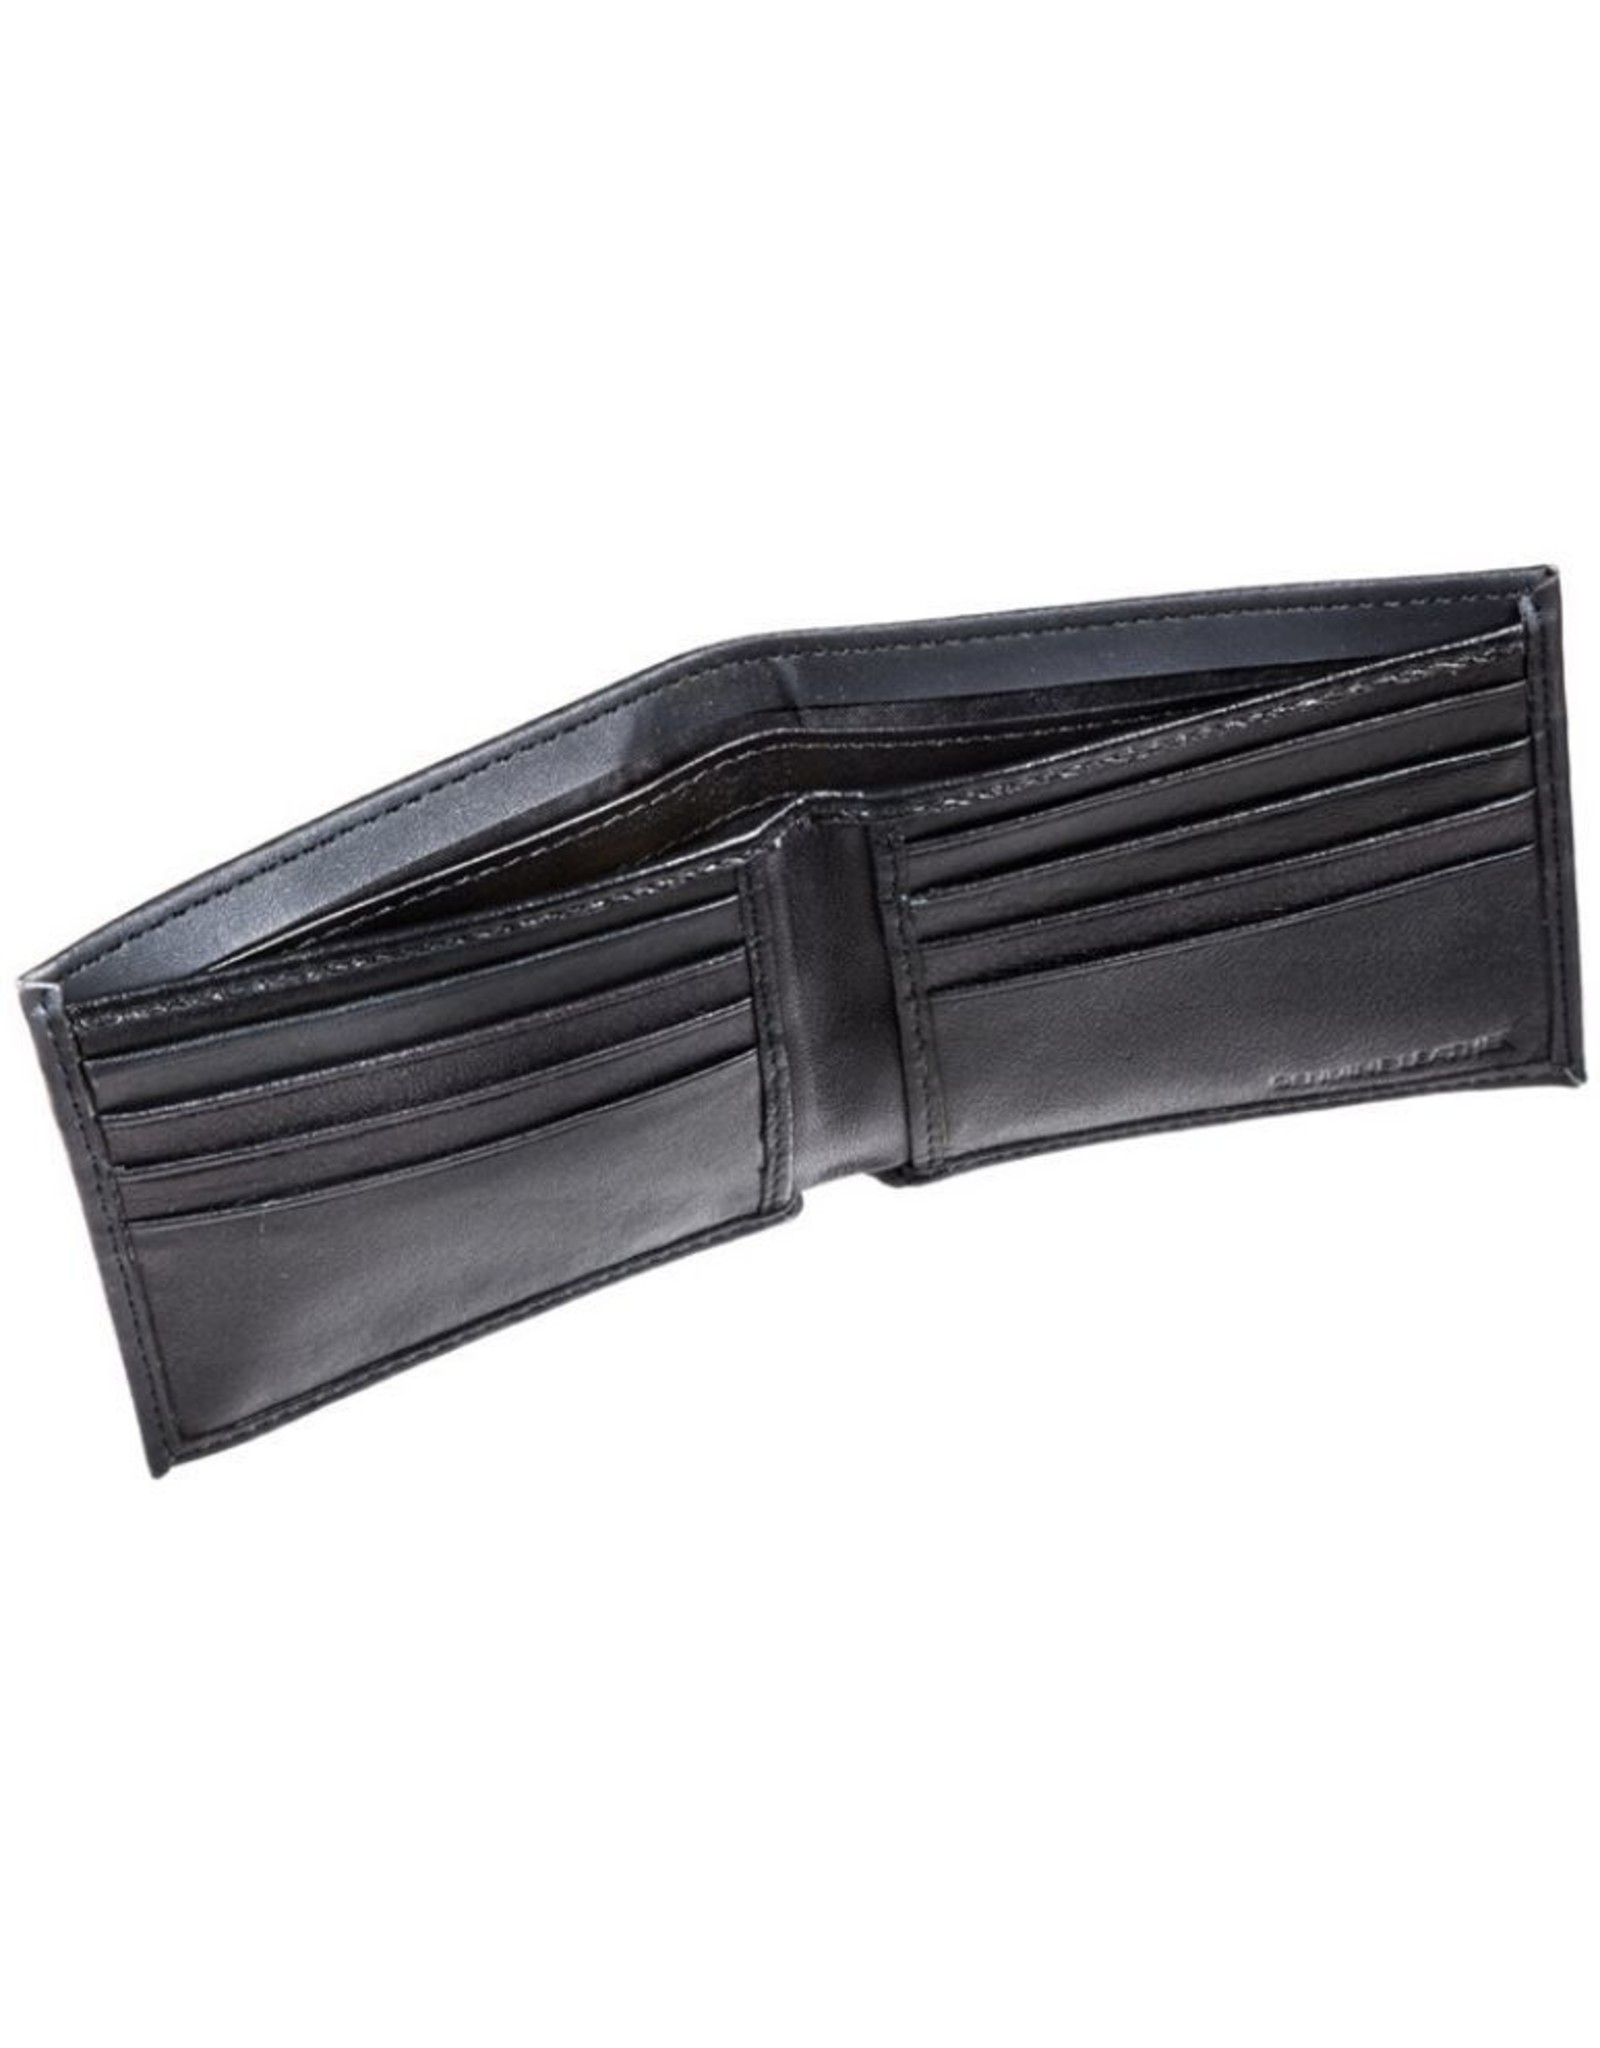 Team Sports Ameica NHL Bi-Fold Leather Embossed Wallet Oilers